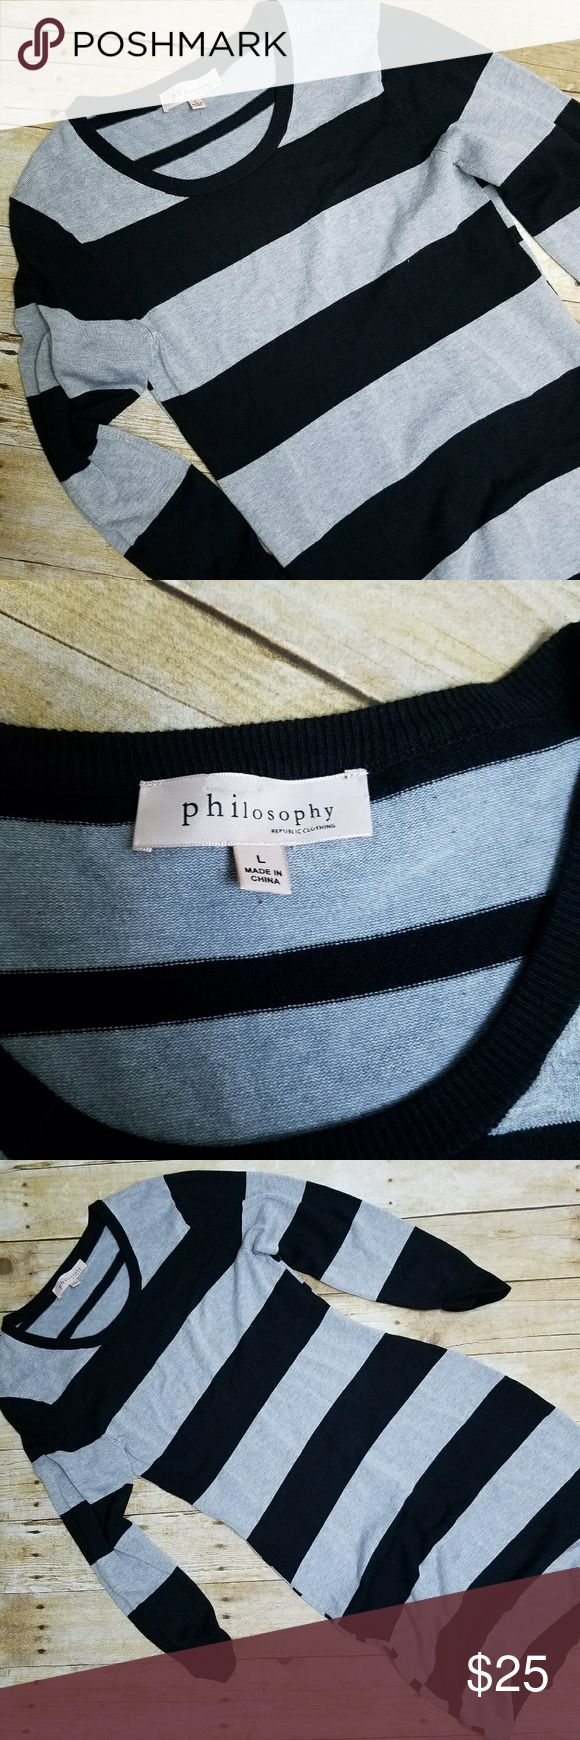 Gray and Black Sweater Dress Size Large Form fitting dress by philosophy. Size Large and grey and black. Super soft to touch and stretchy. Bust 15.5 inches, waist 15 inches, length 38 inches.  Medium length dress. All measurements taken flat. (G64) Philosophy Dresses Long Sleeve